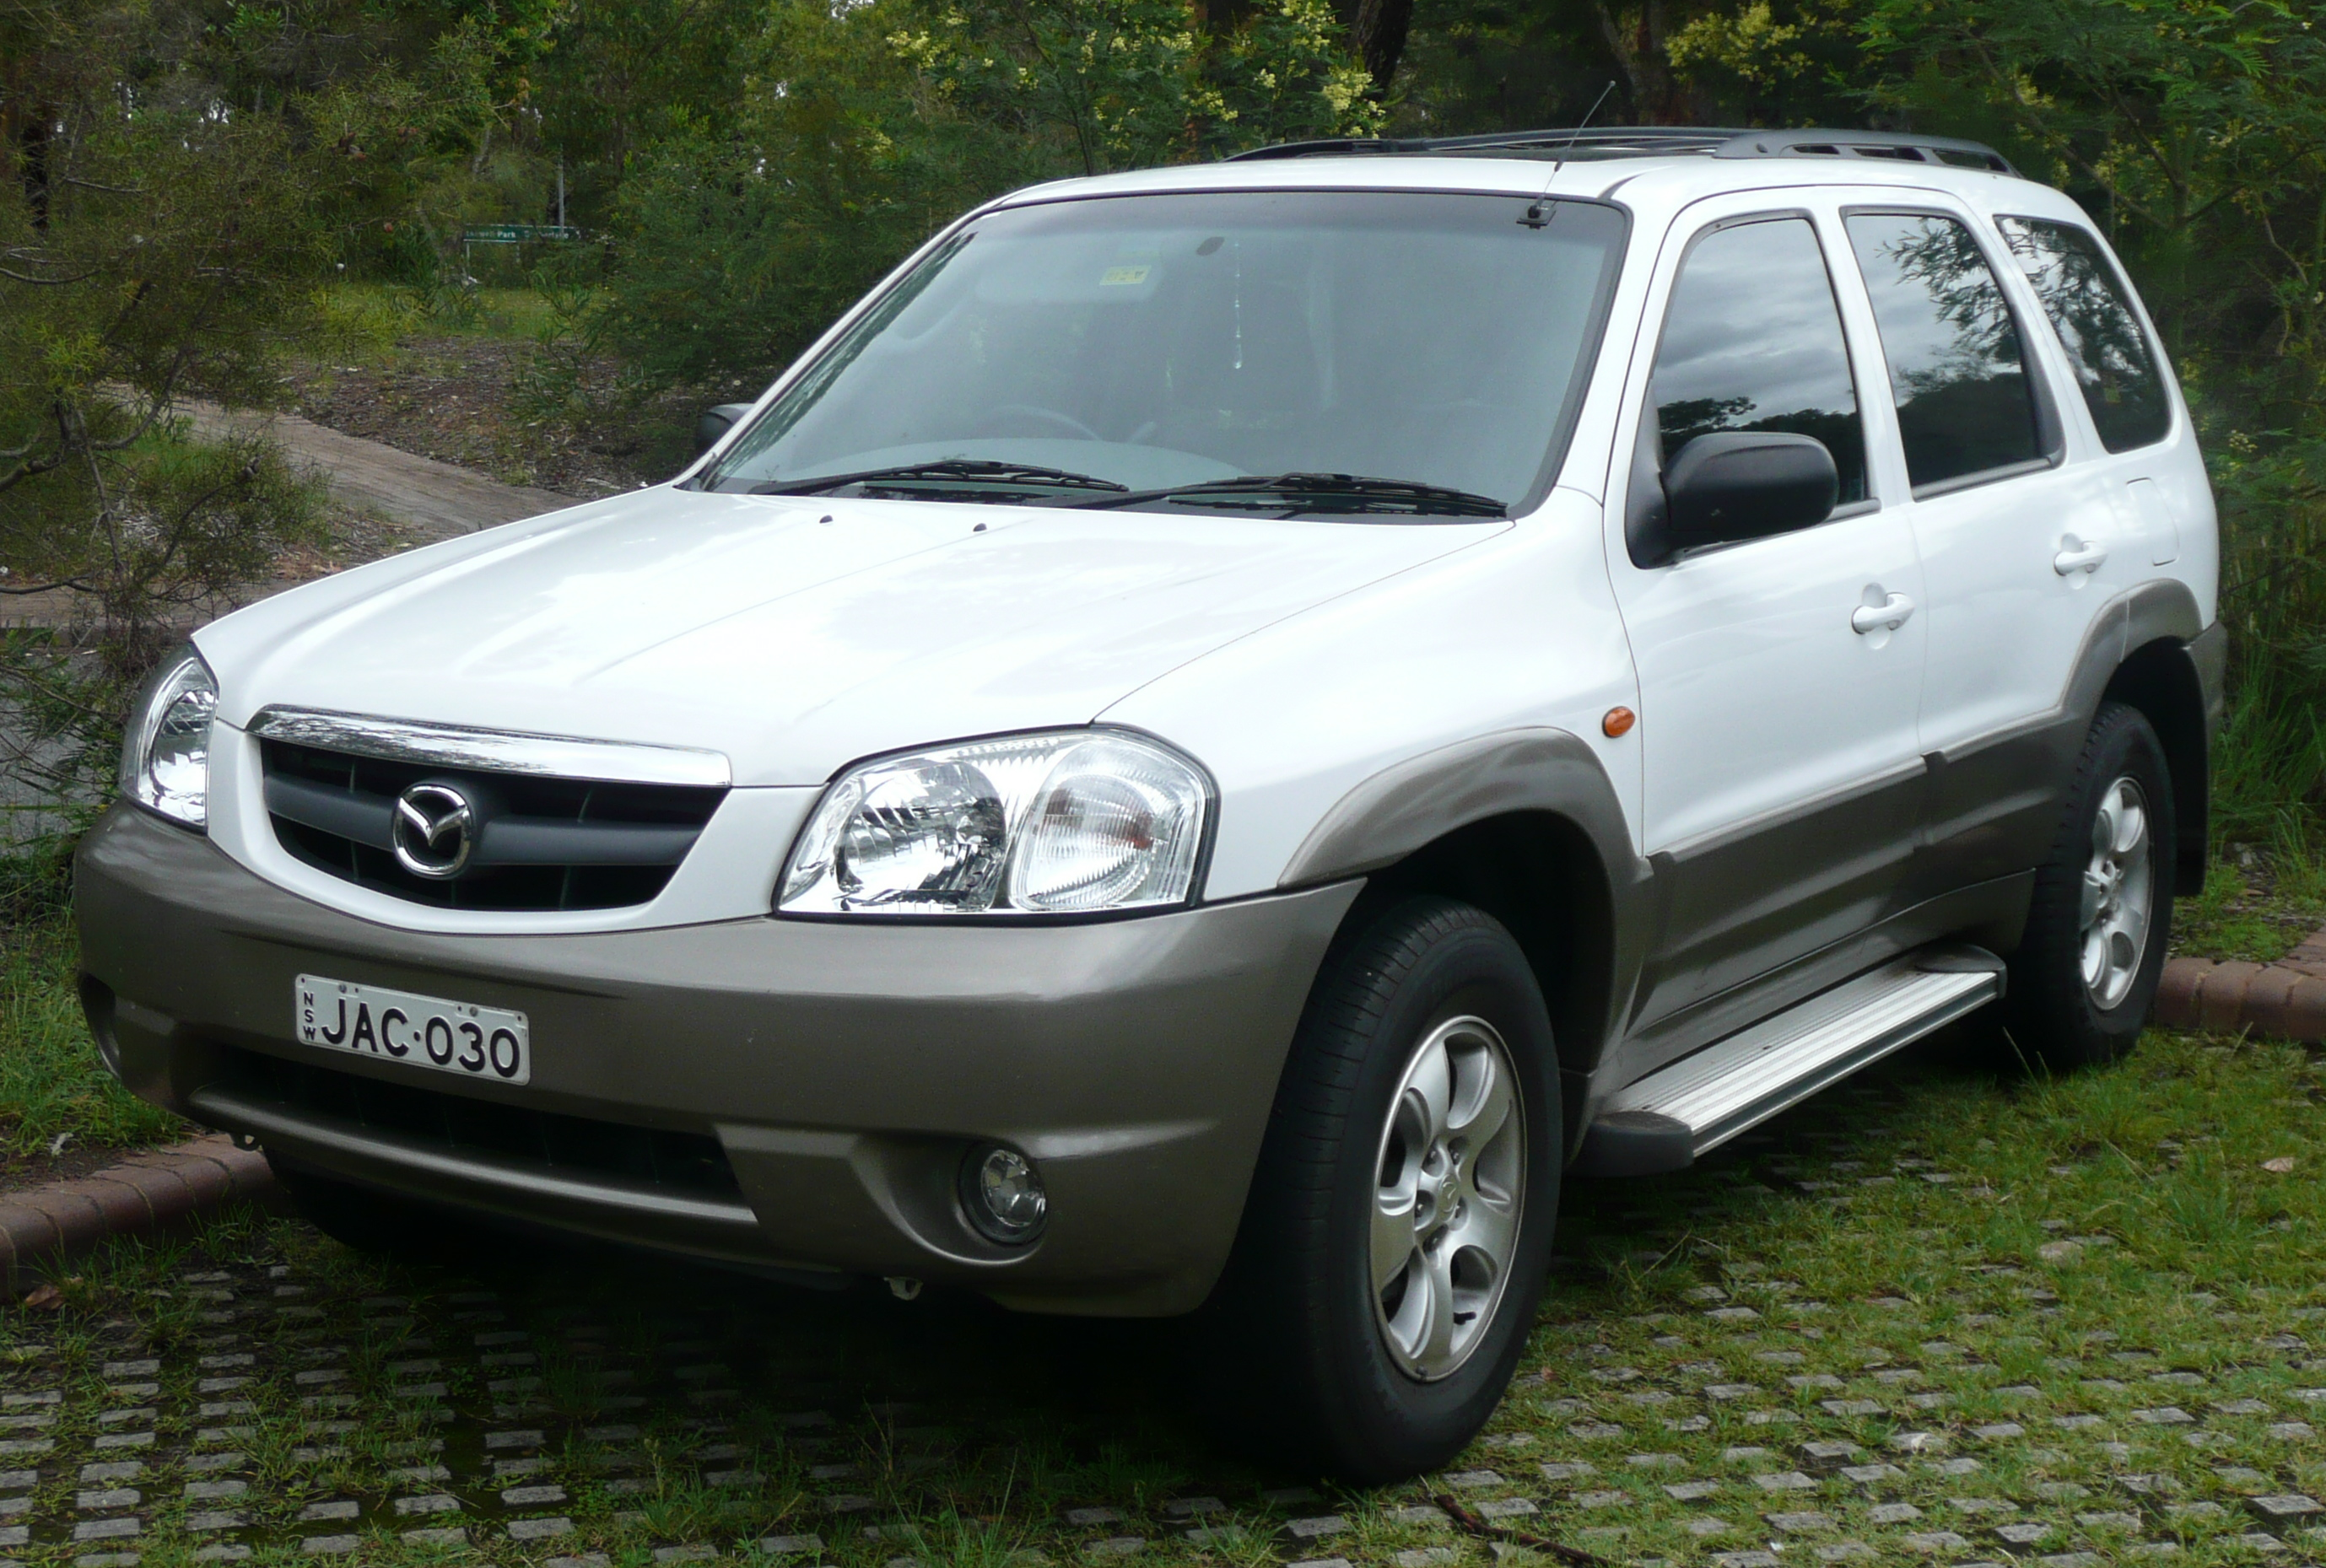 Black Mazda Tribute 2007